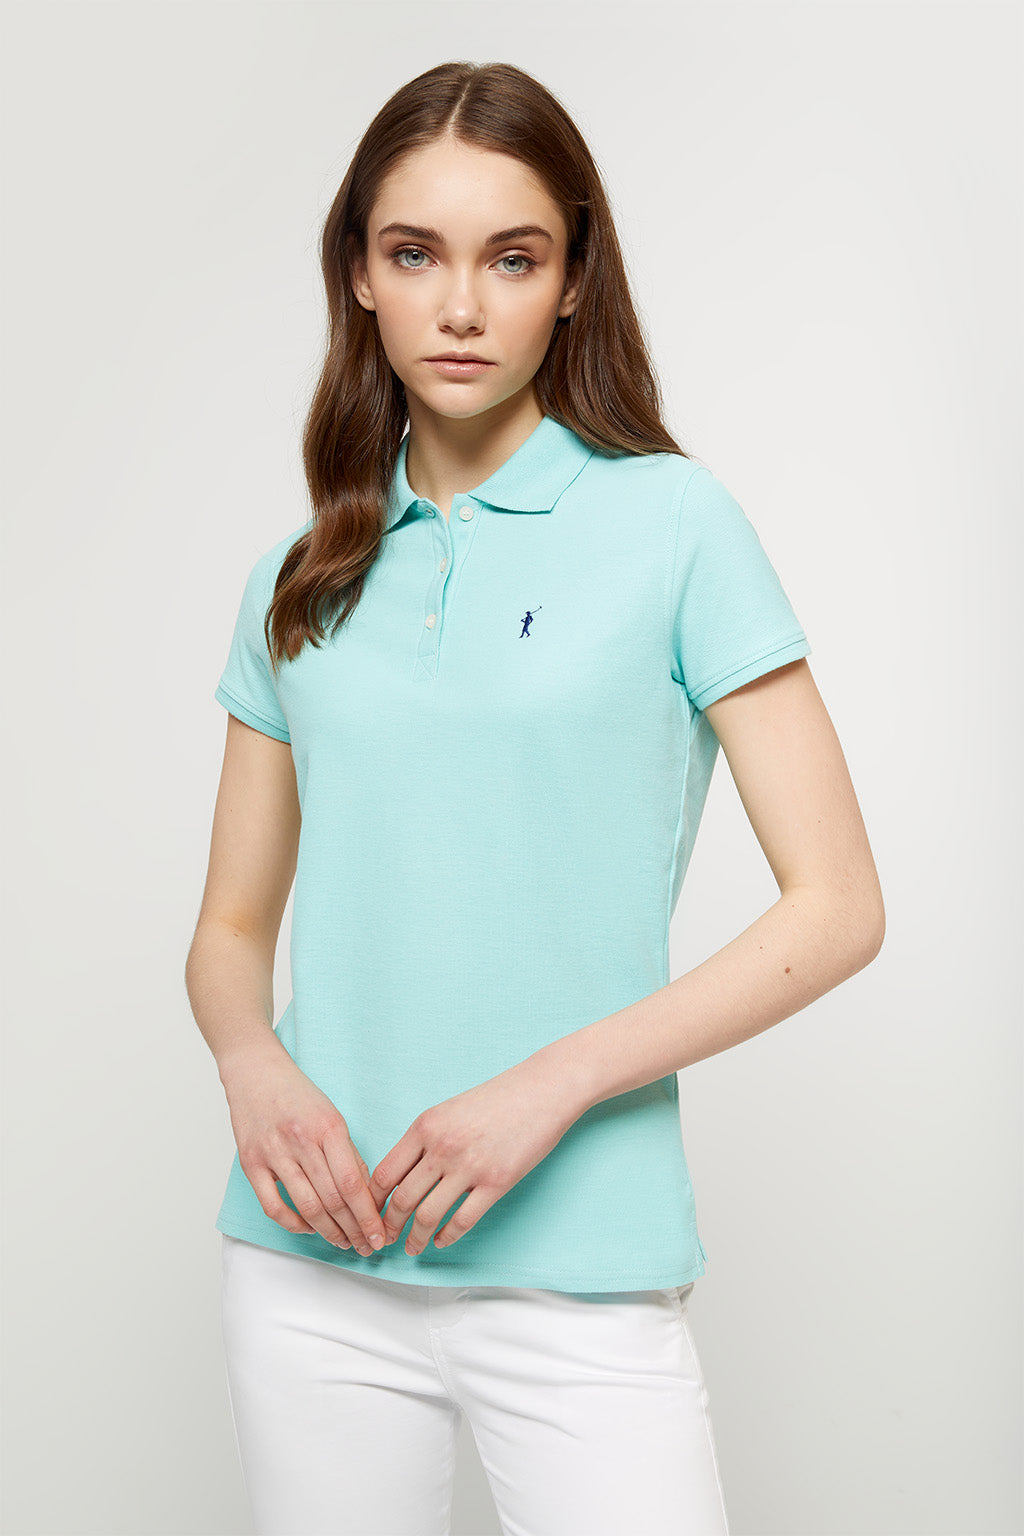 Mint green polo shirt with embroidered logo